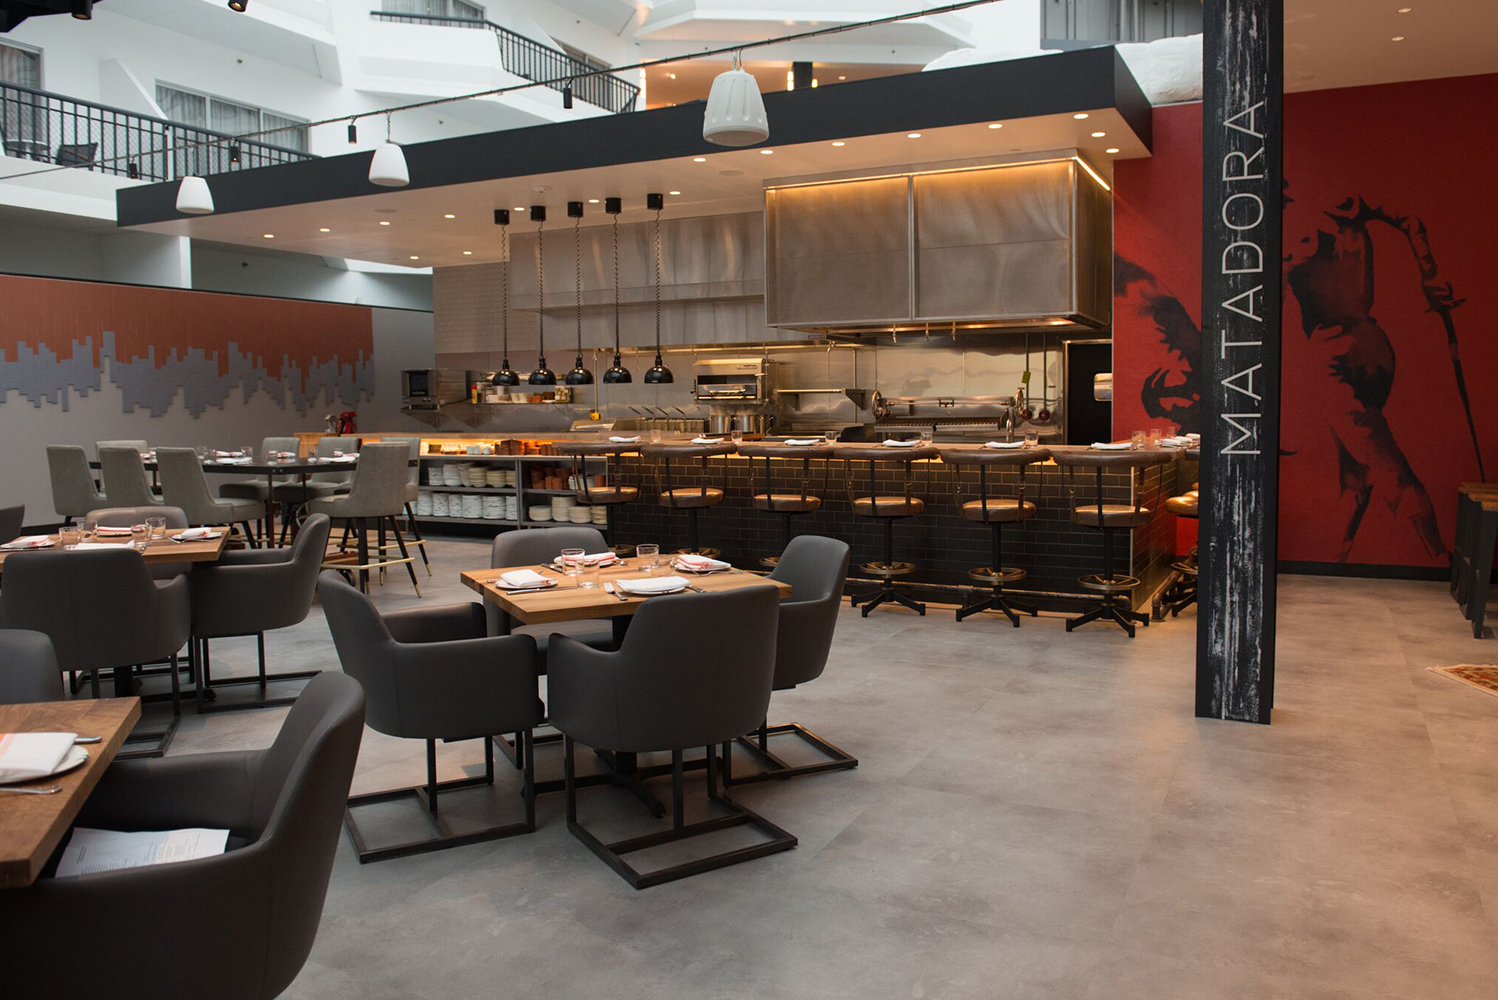 The property also opened Matadora, the hotel's Spanish tapas restaurant.